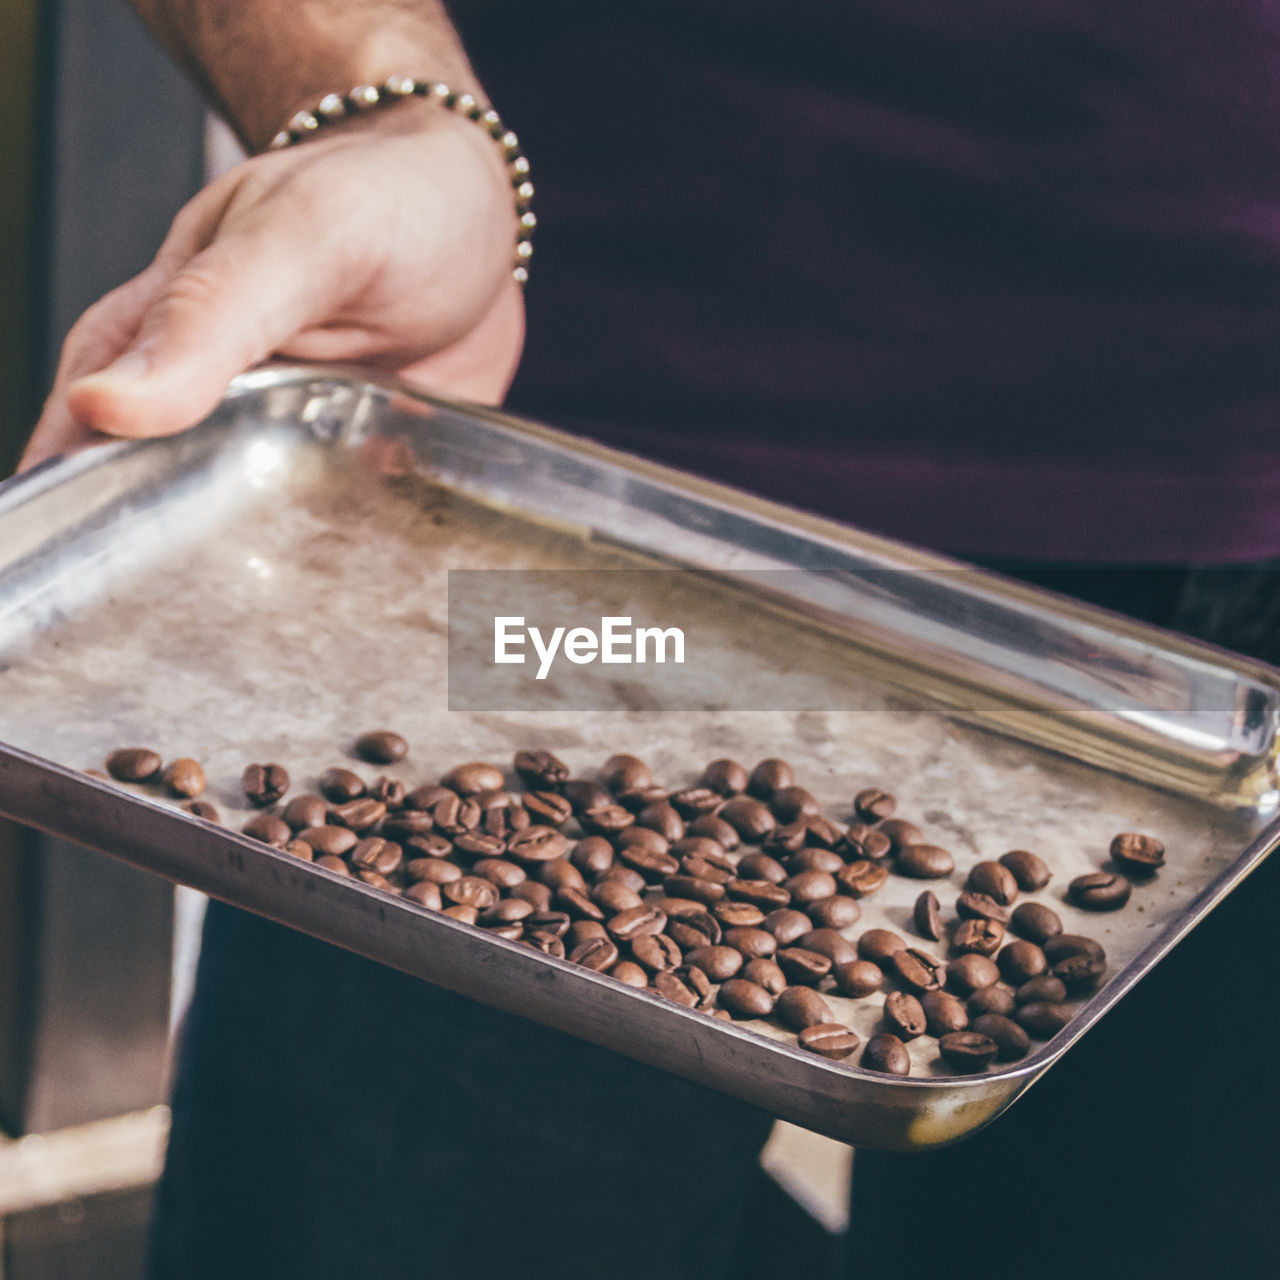 MAN HOLDING TRAY WITH COFFE BEANS